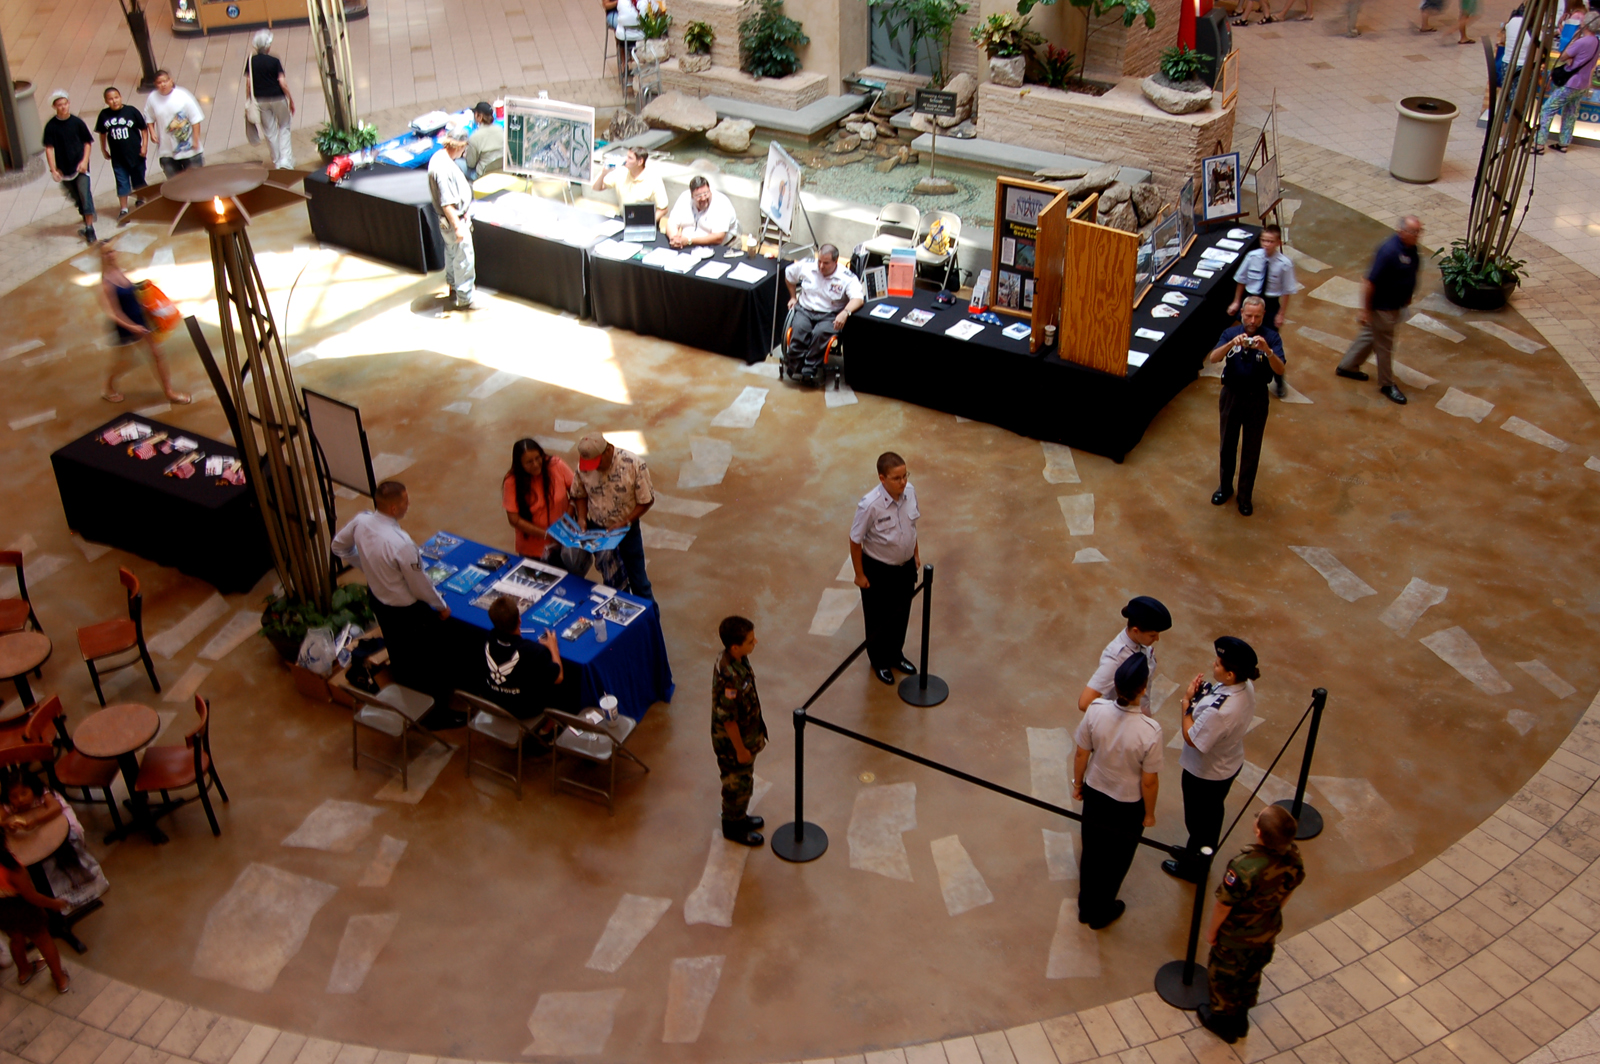 Selling Aviation Education at the Local Shopping Mall